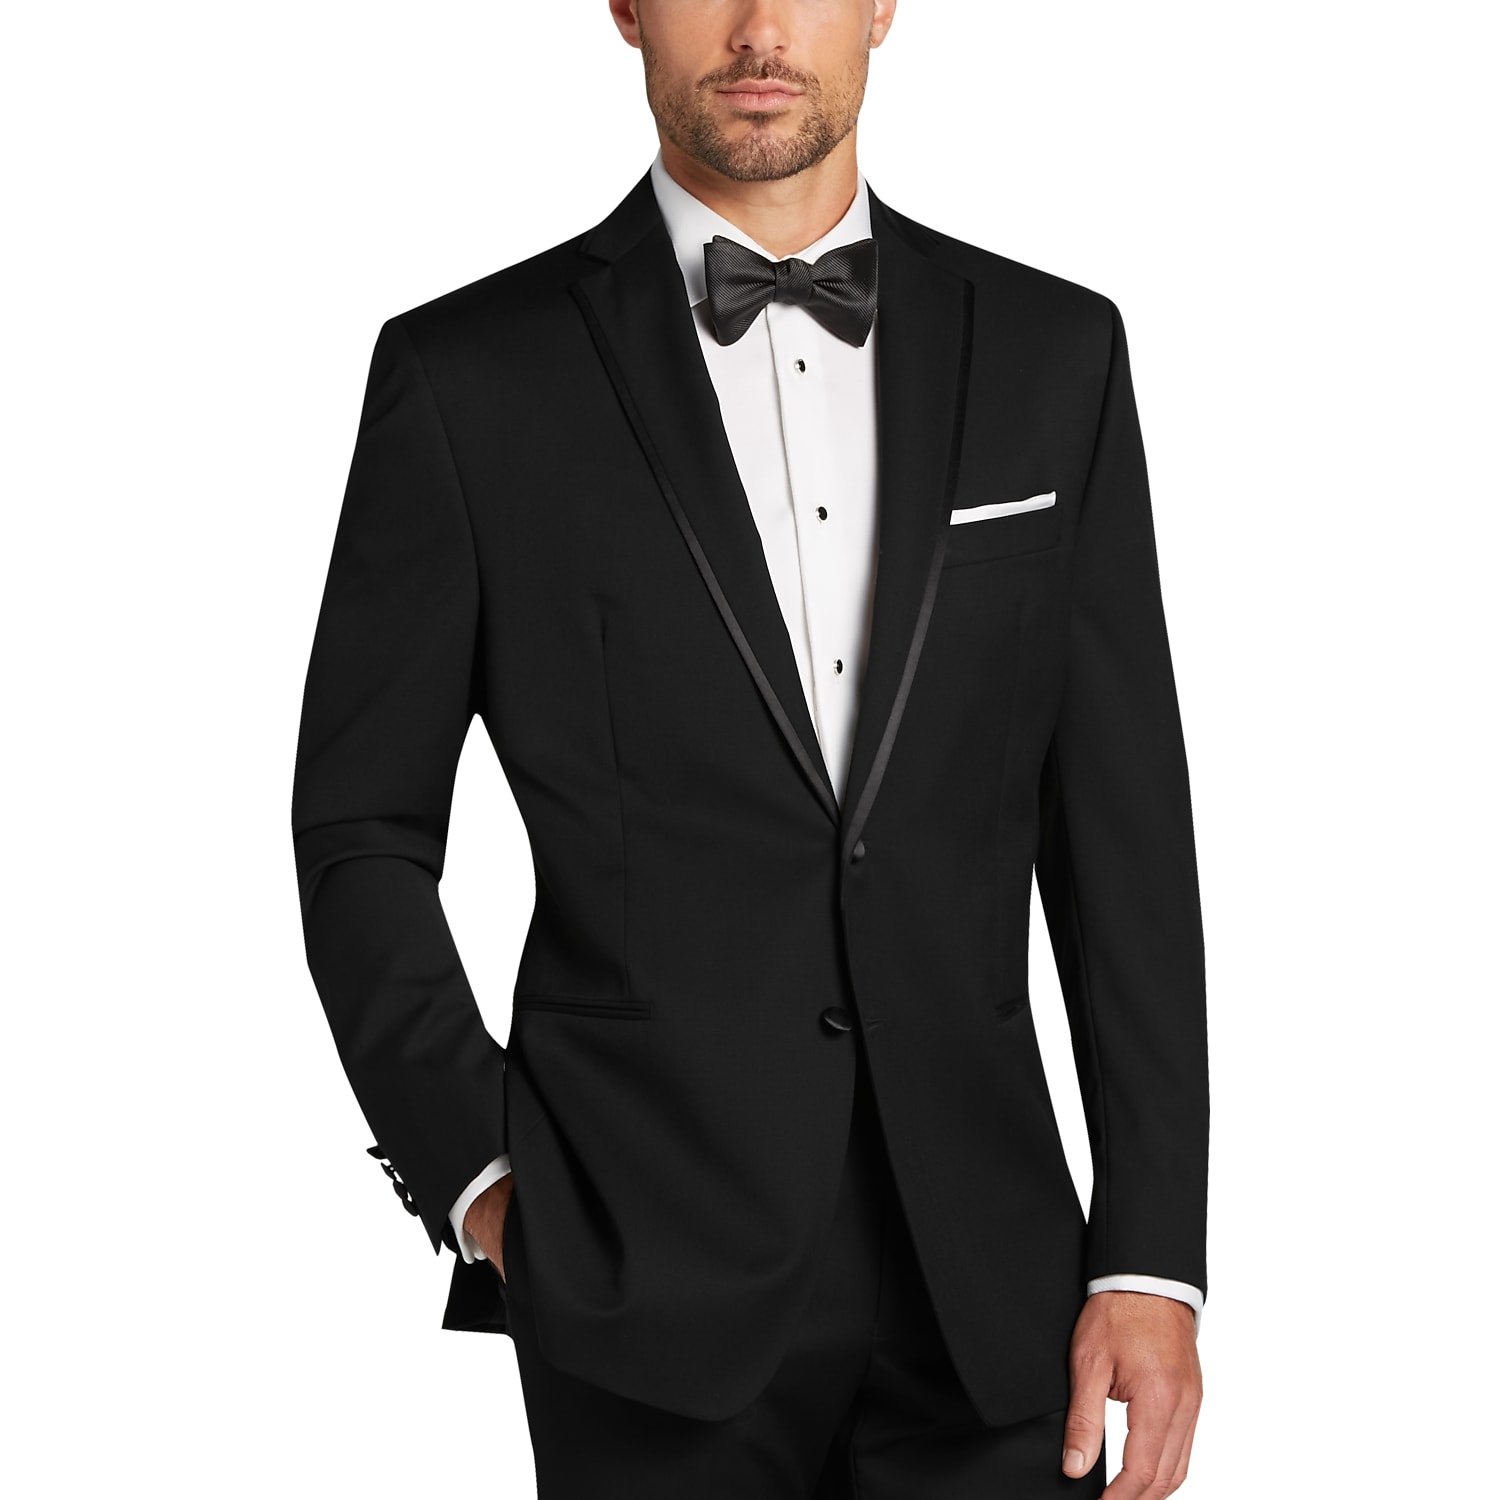 Tuxedos, Men's Formal & Attire | Men's house on